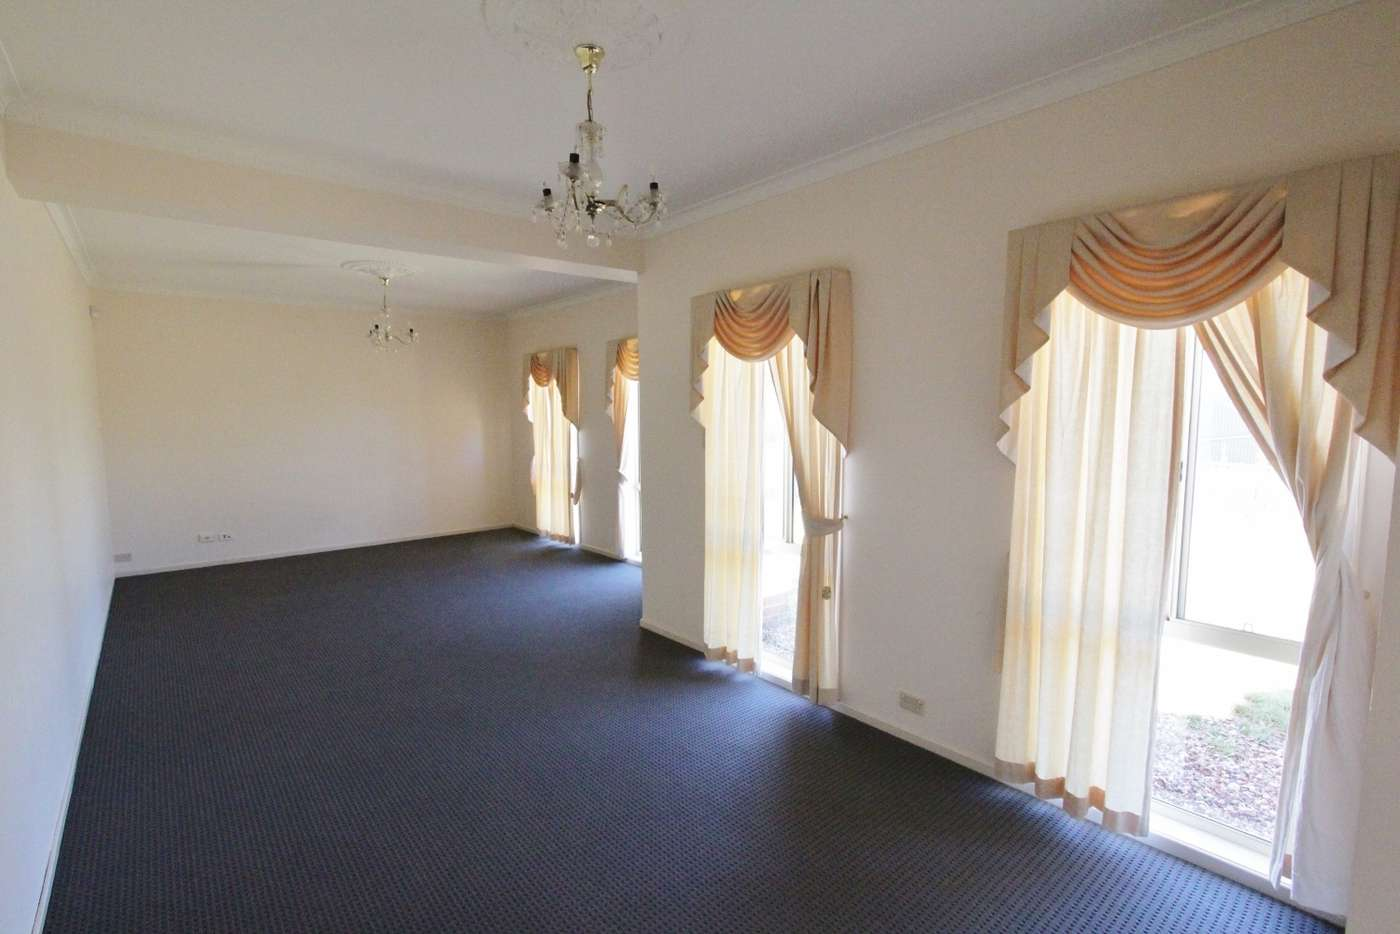 Seventh view of Homely house listing, 12 Ironbark Court, Kennington VIC 3550